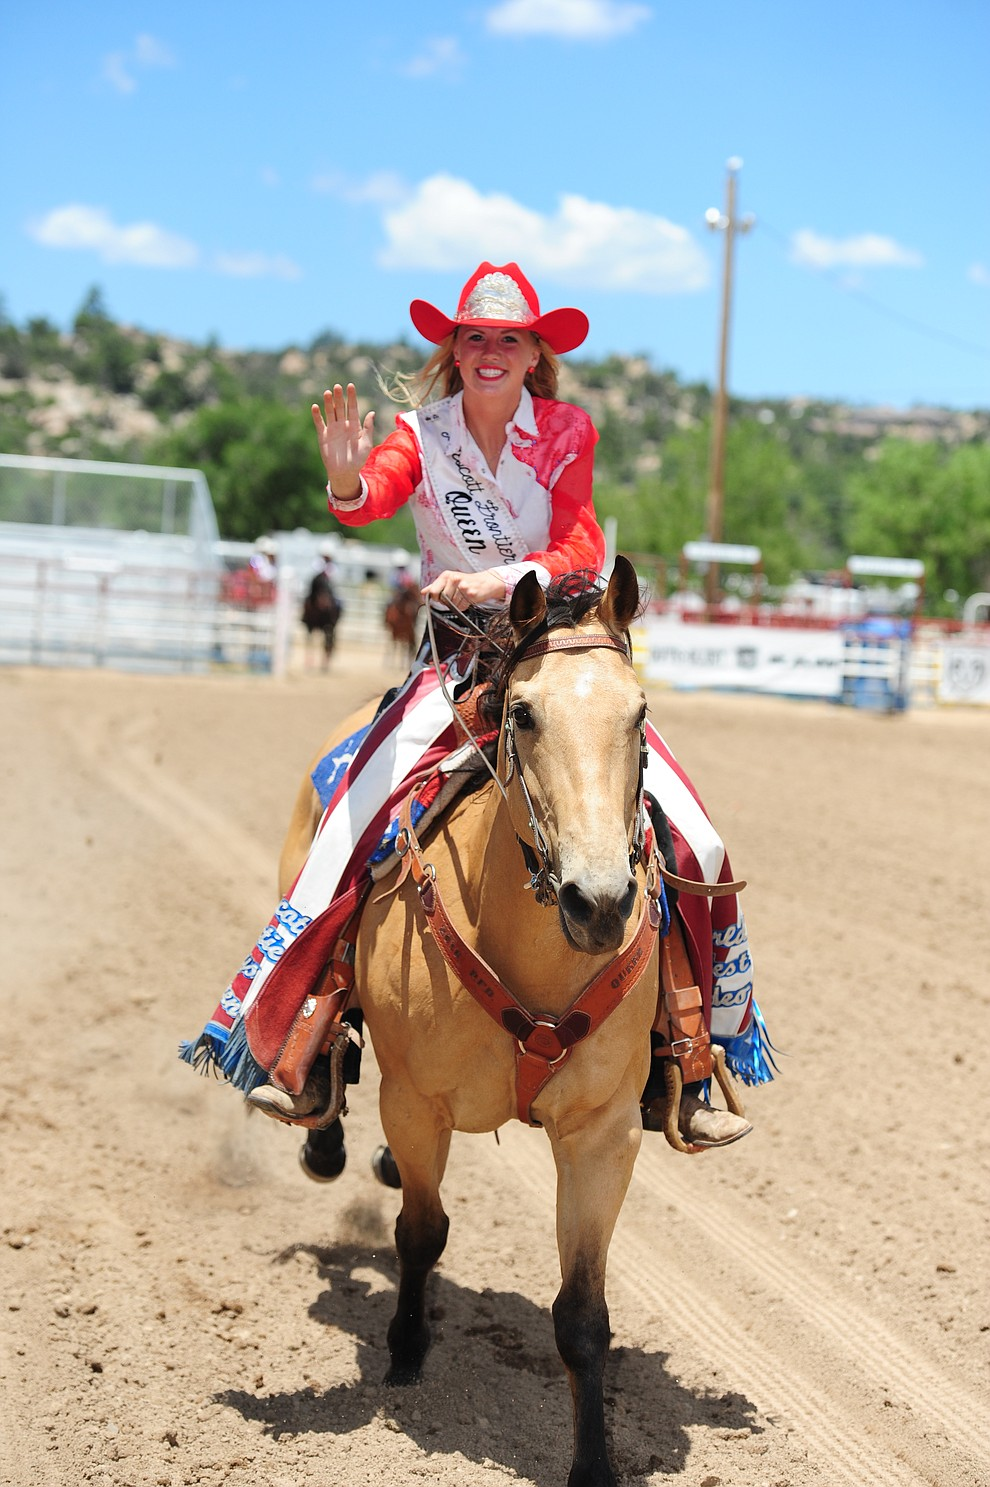 2016 Queen Bailey Anderson waves goodbye as the 2017 Prescott Frontier Days Royalty were crowned before the final performance of the 2016 Prescott Frontier Days Rodeo Monday afternoon. (Les Stukenberg/The Daily Courier)